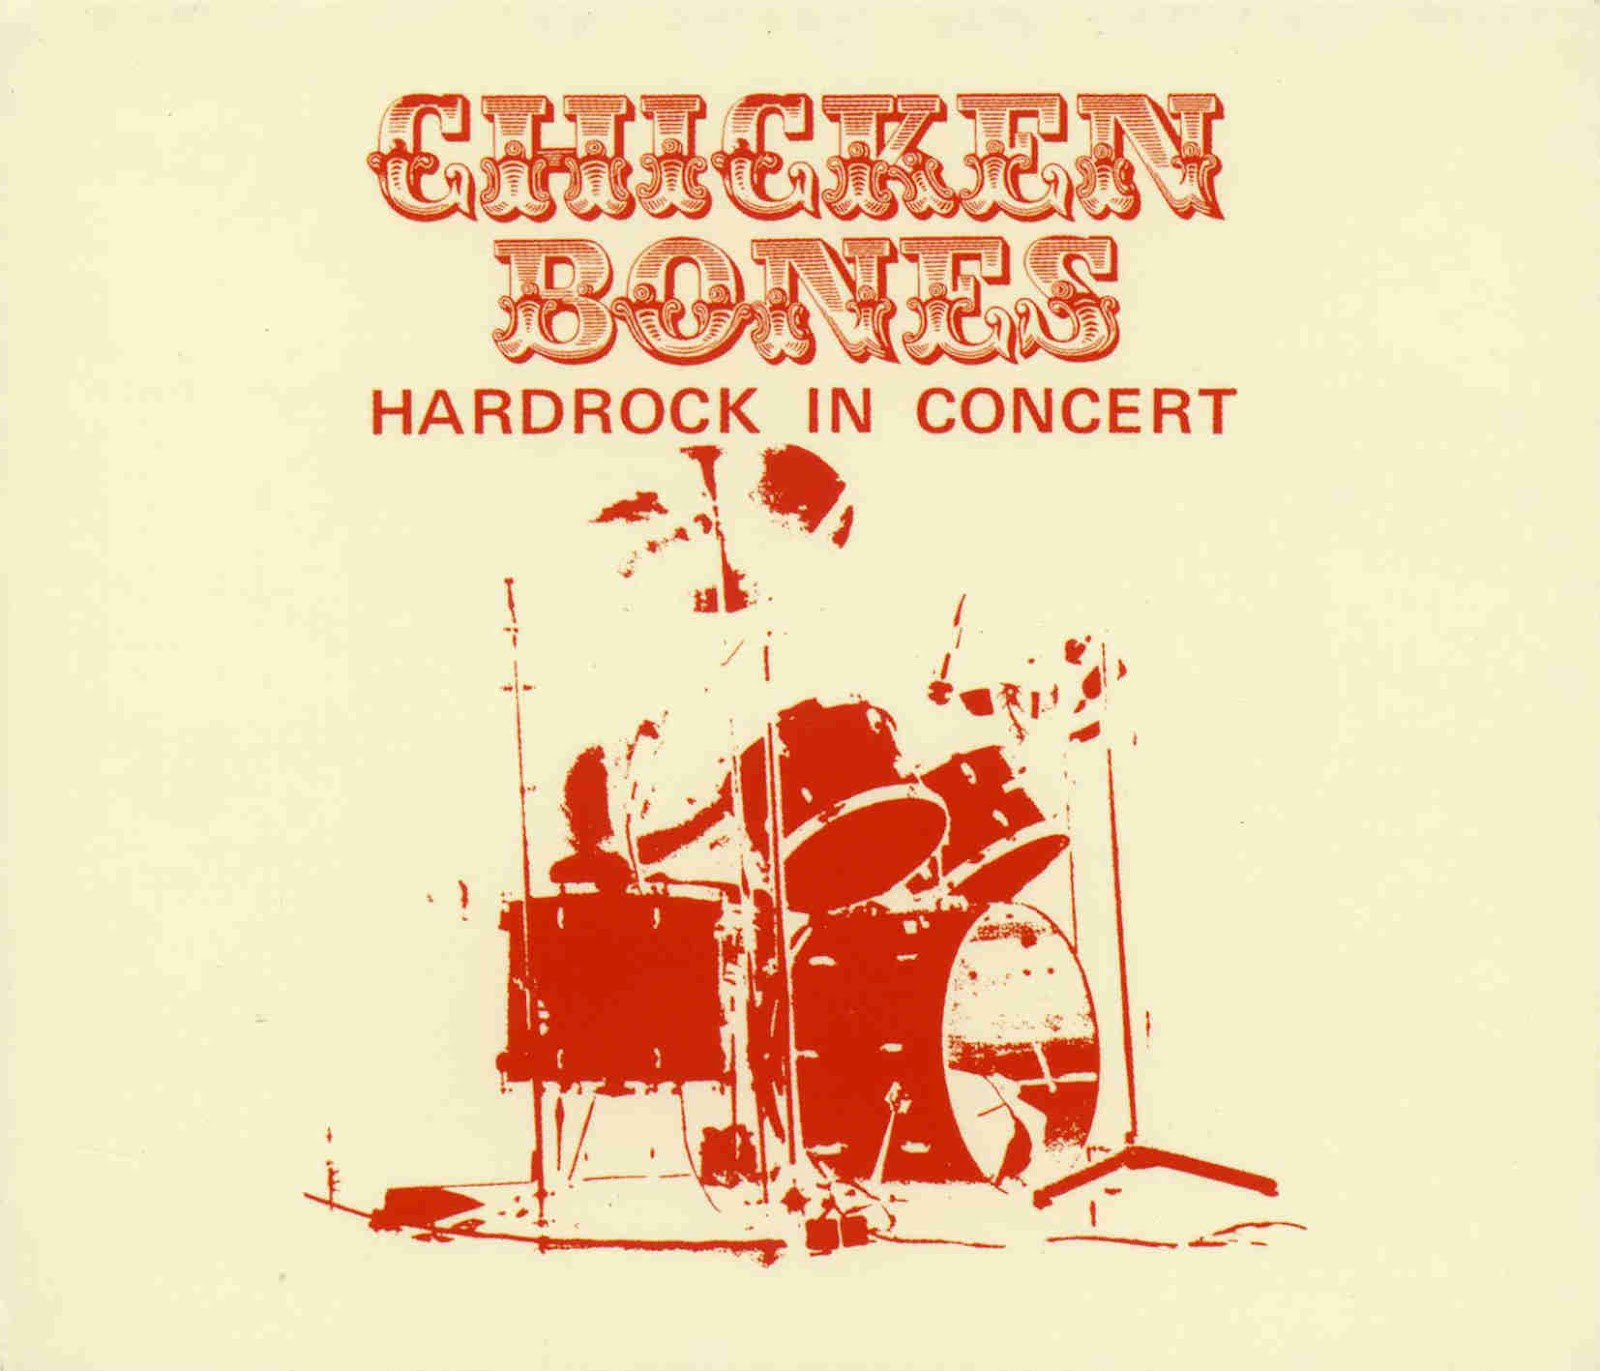 Chicken Bones Hardrock in Concert